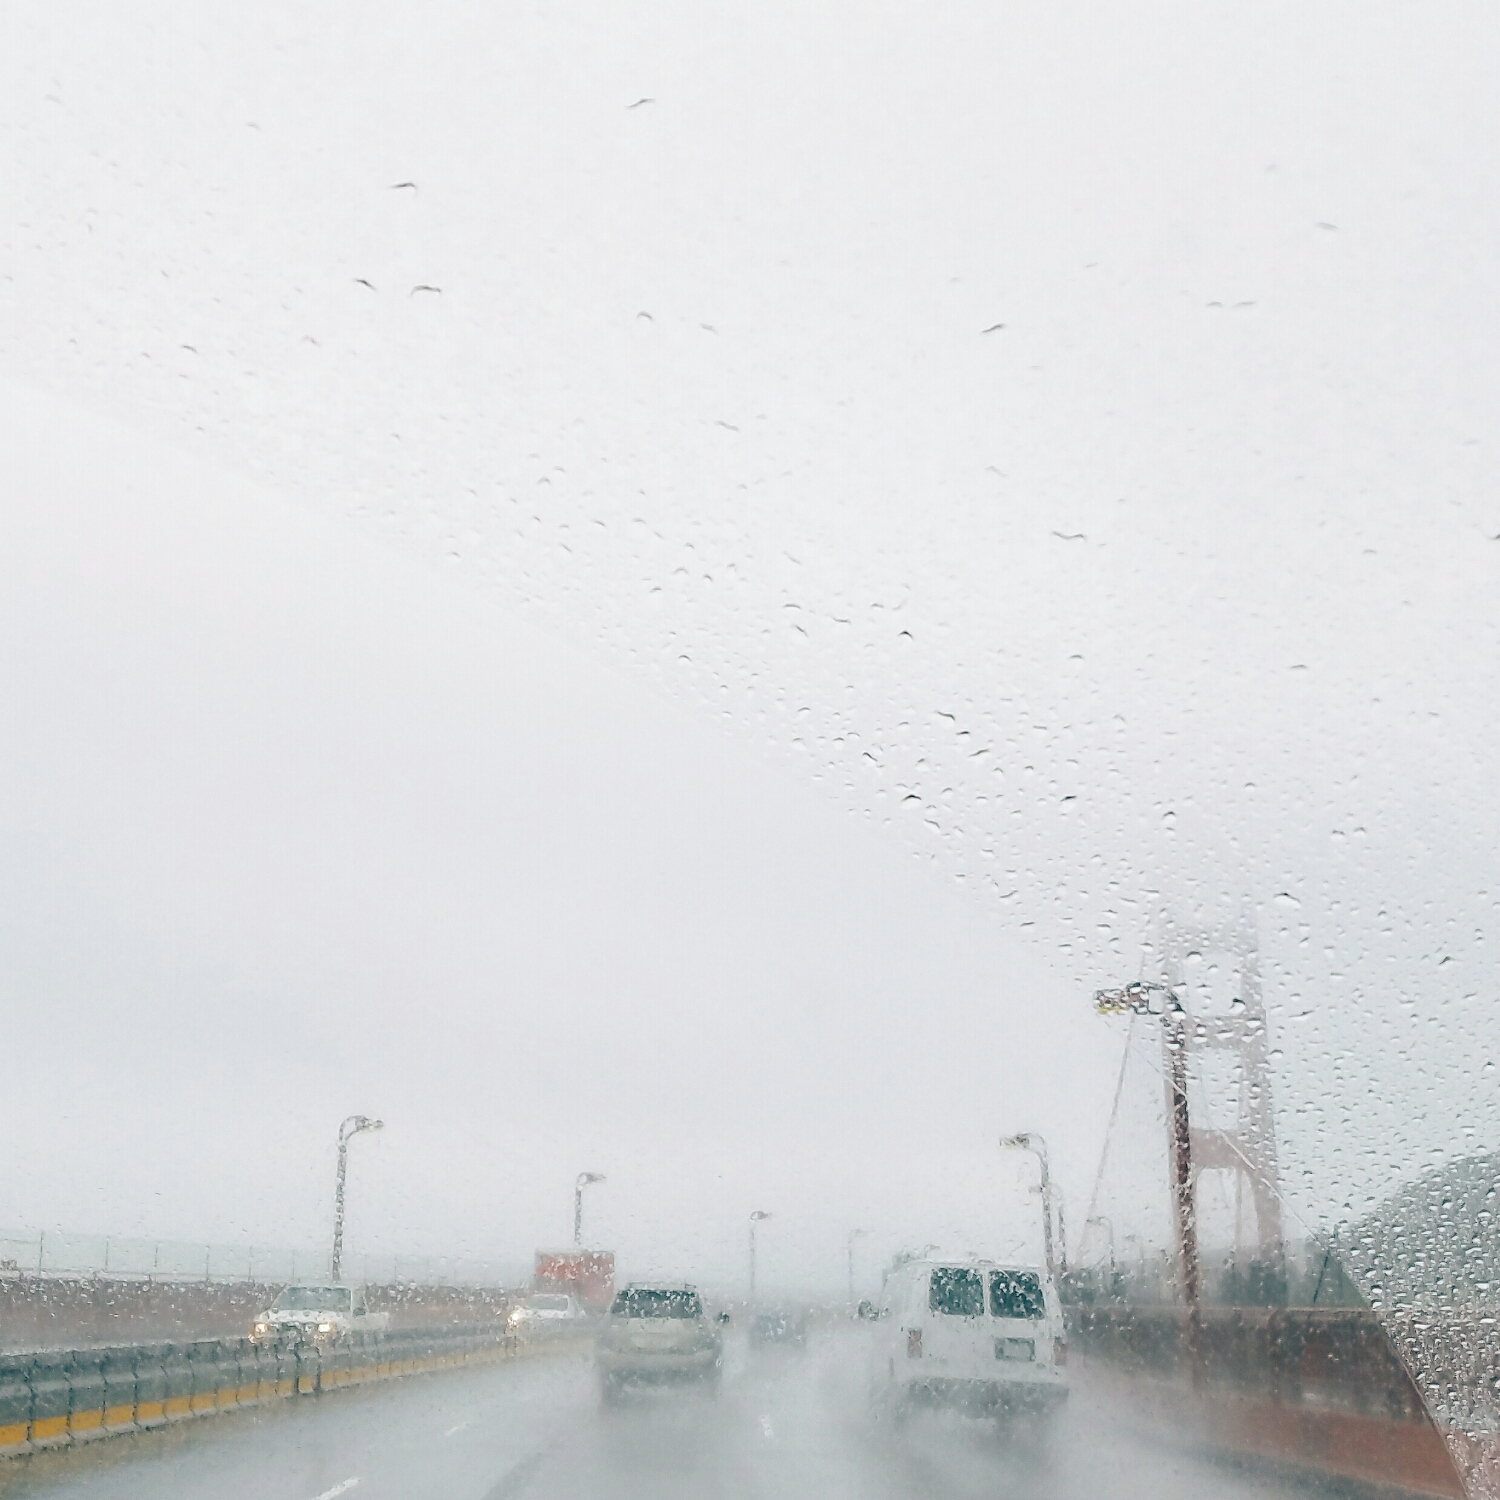 A brief glimpse of the Golden Gate bridge through the rain on our way into the city for a day full of meetings